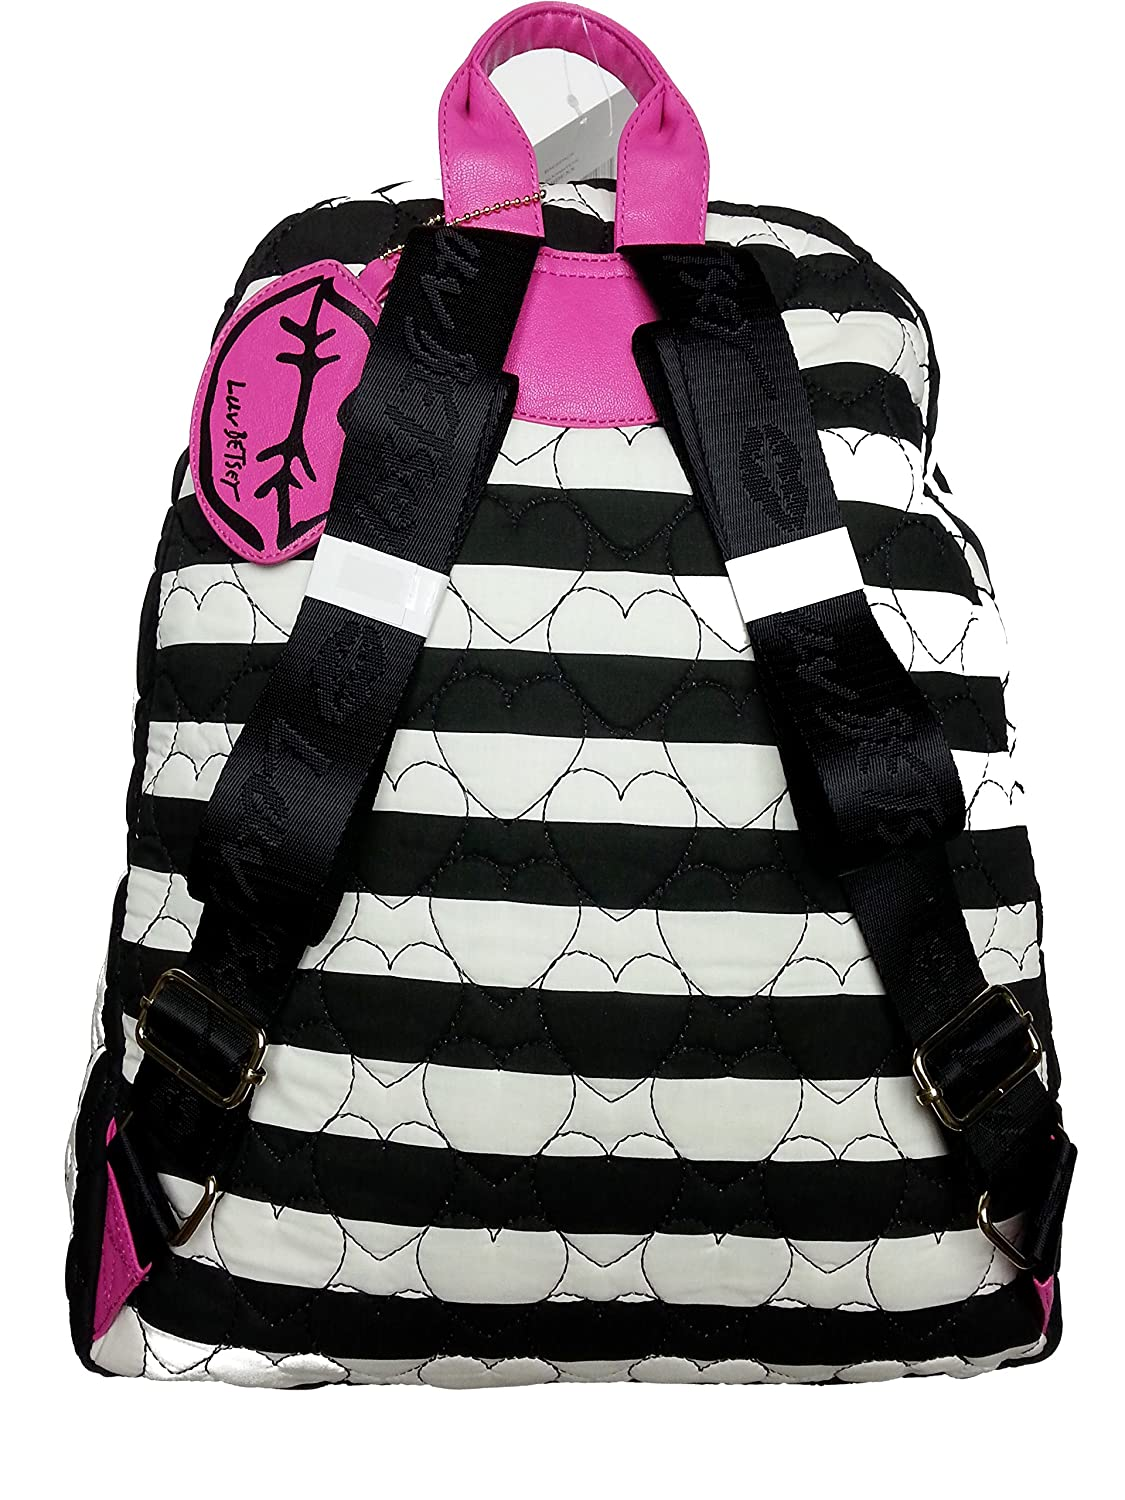 Girls Black and White Striped Heart Quilted Backpack Bag Betsey Johnson Luv Betsey Womens